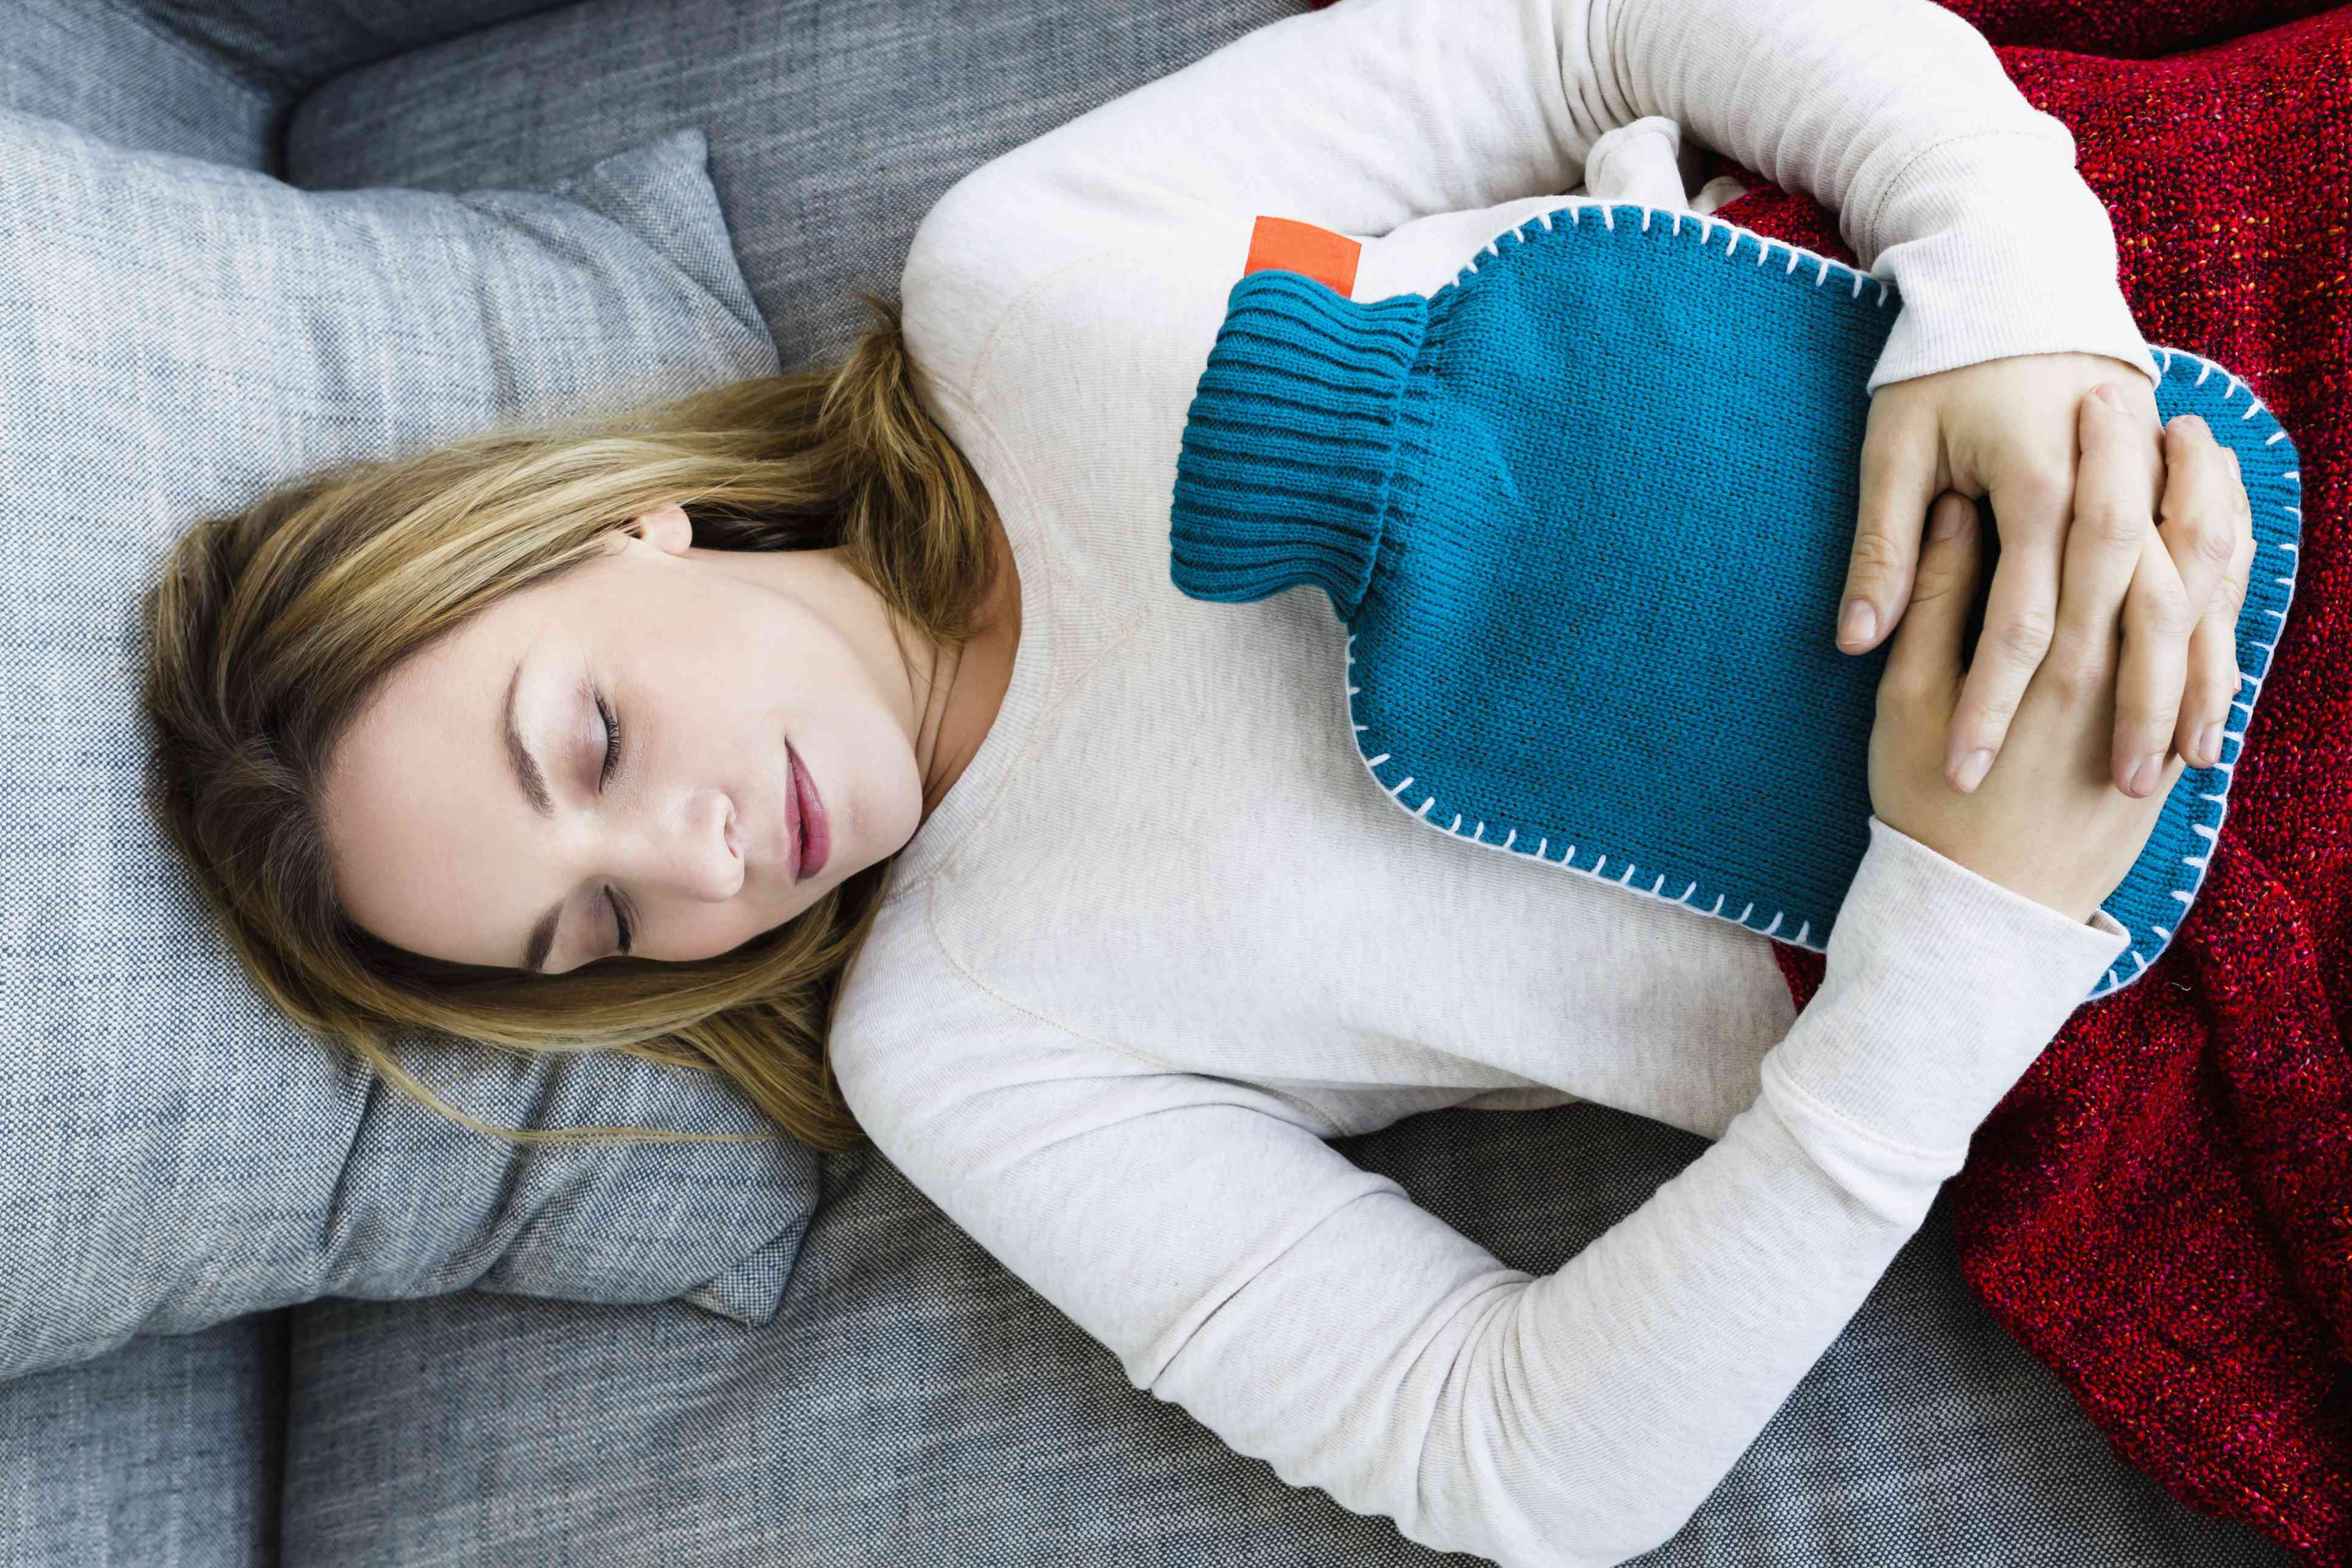 Woman with heating pad